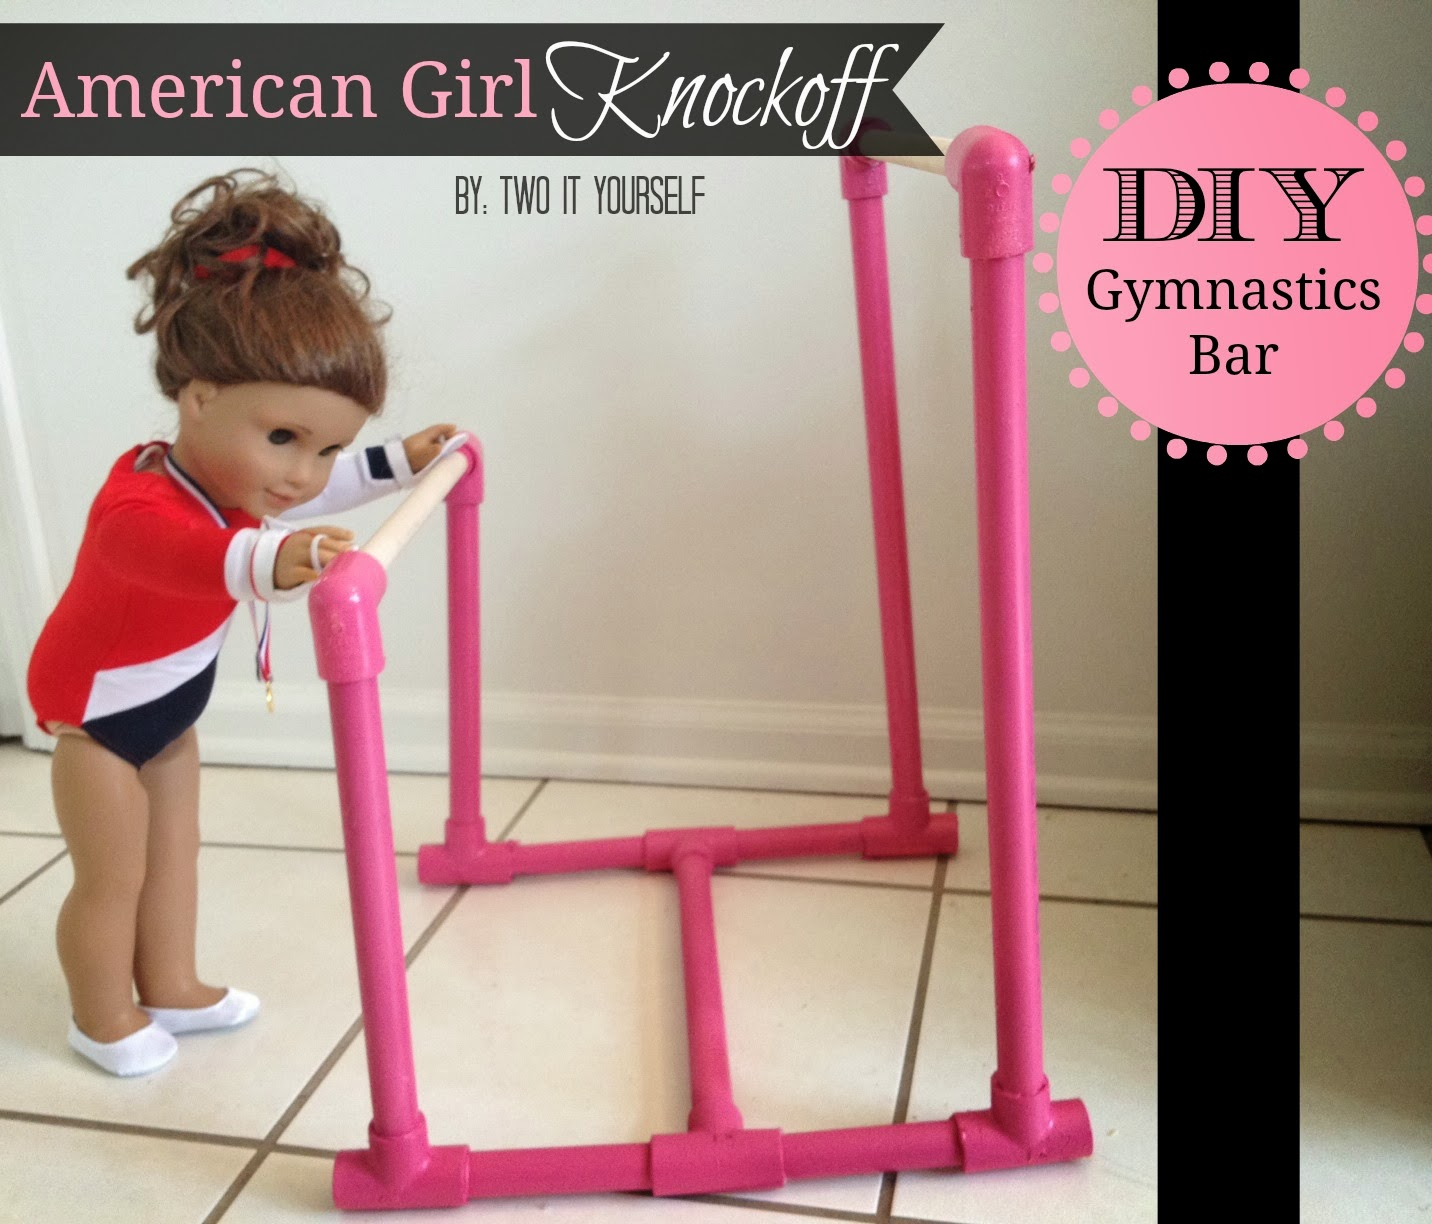 Two It Yourself Diy American Girl Gymnastics Bar